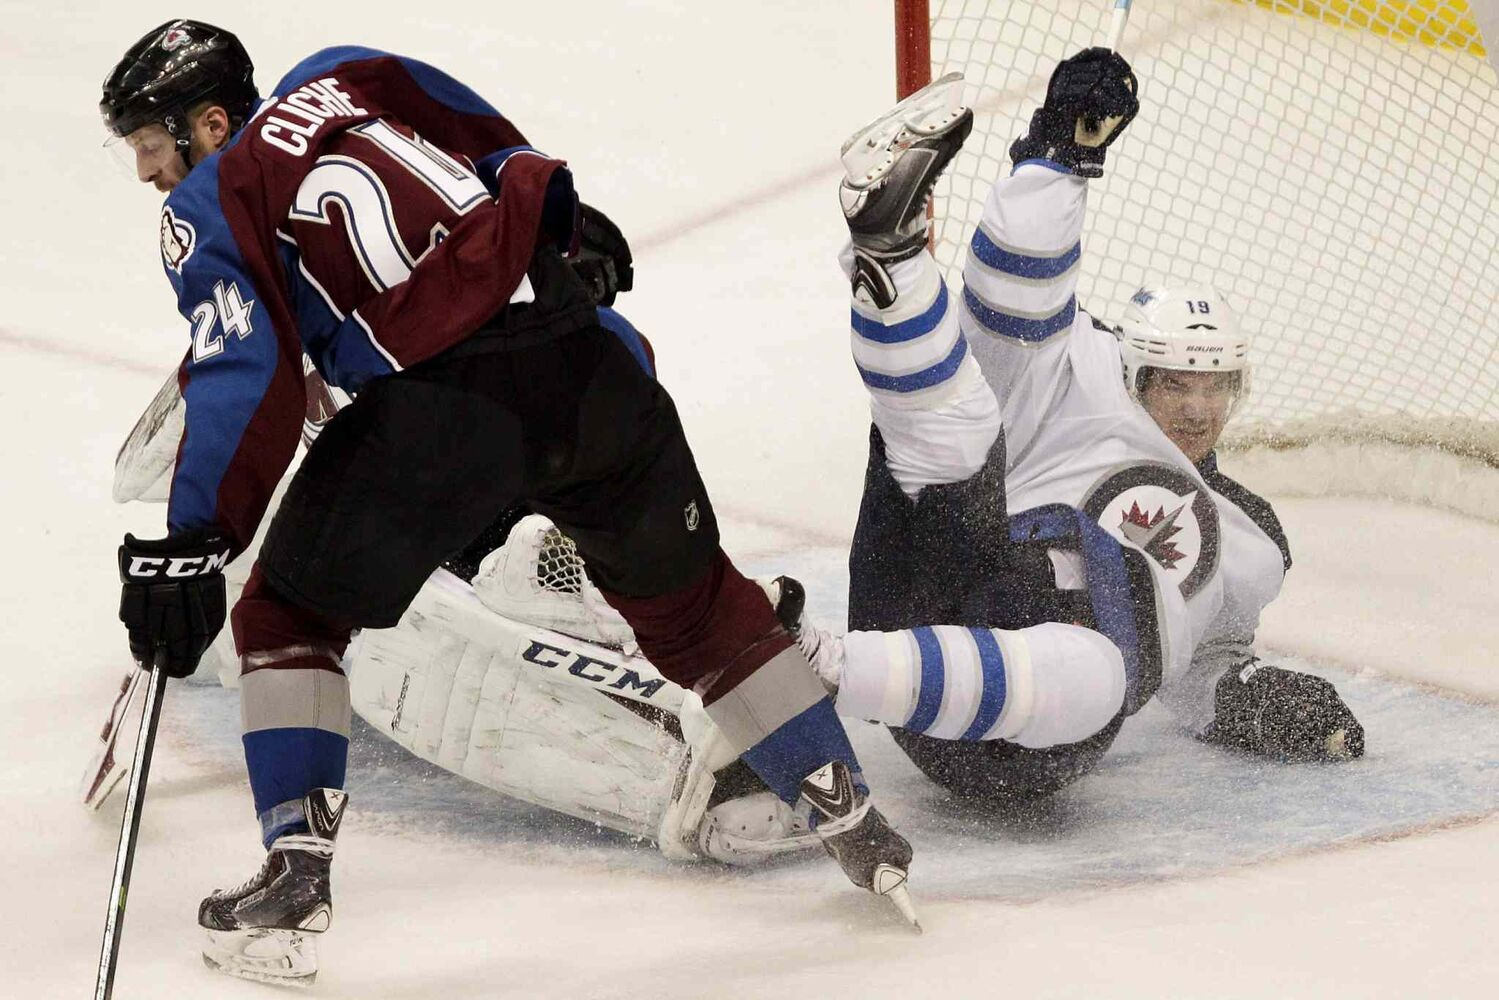 Winnipeg Jets centre Jim Slater is called for interfering with the goalie while Colorado Avalanche right-winger Marc-Andre Cliche clears the puck during the first period. (BARRY GUTIERREZ / THE ASSOCIATED PRESS)